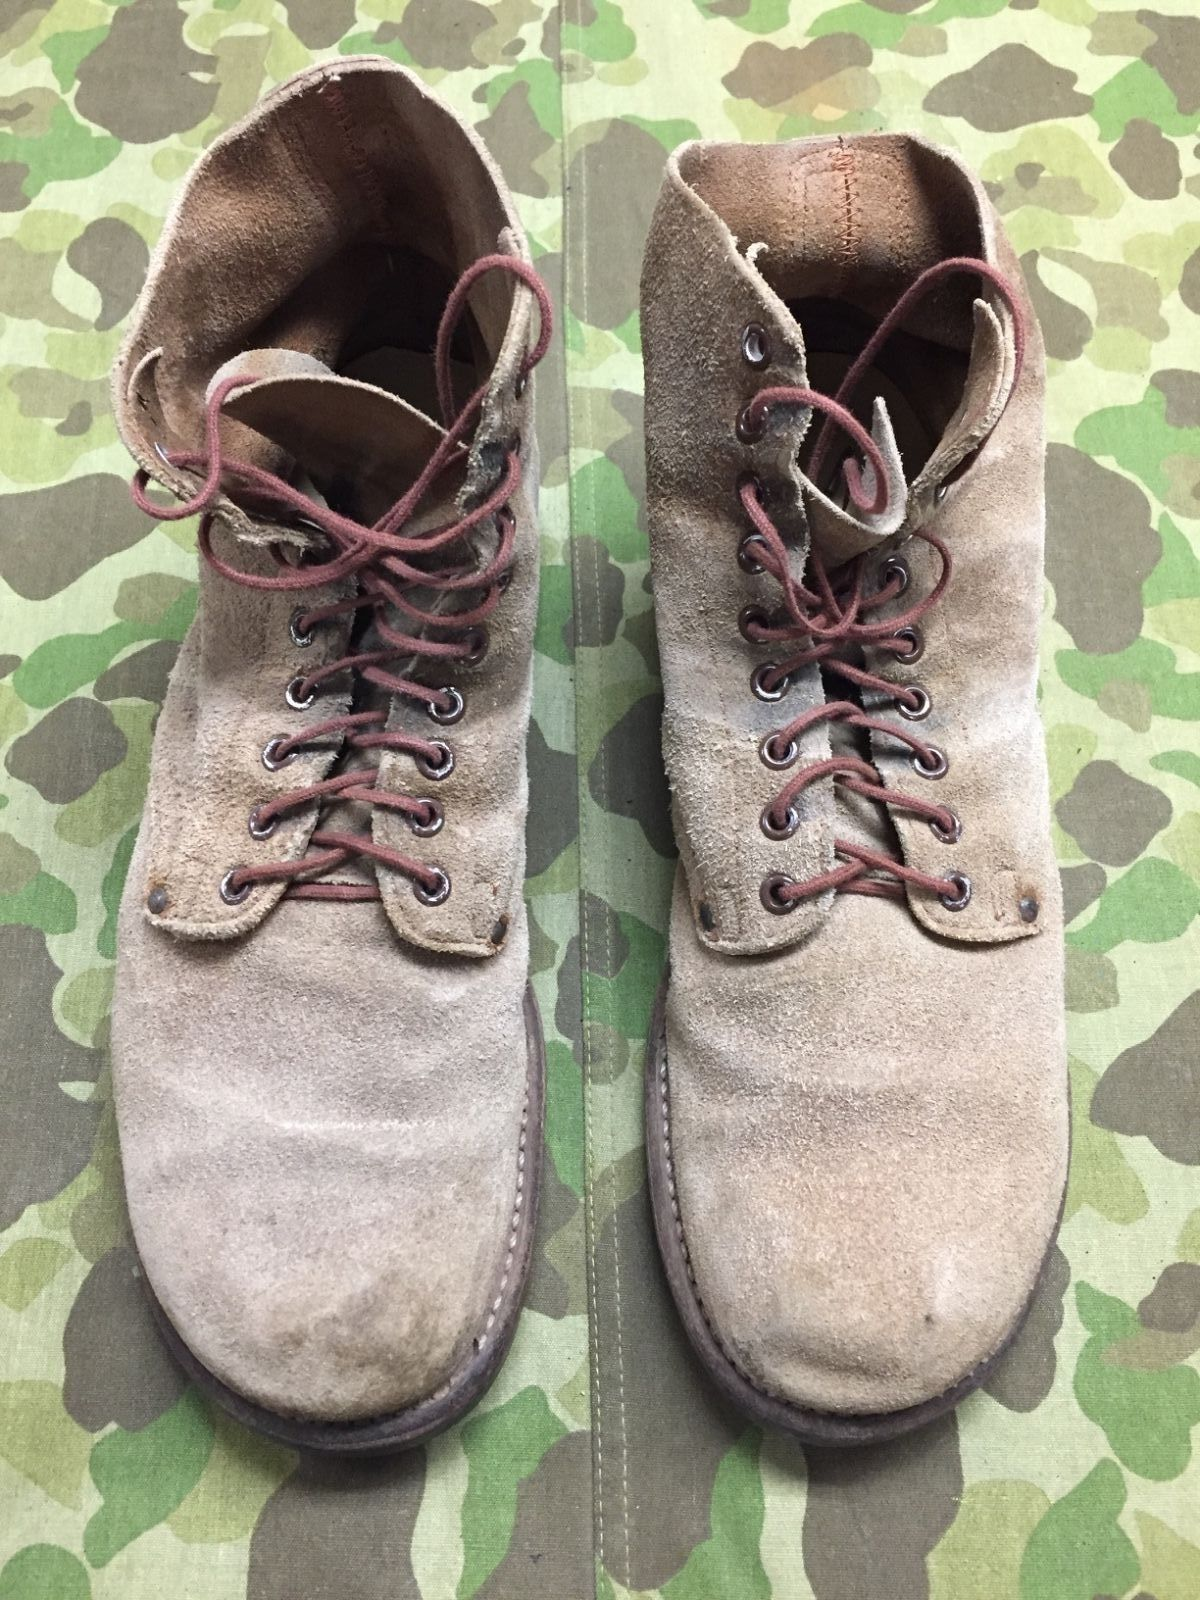 WW2 US ARMY rough out combat boots https://t.co/KGfuYCfPDK https://t.co/PSEZmfzqUP